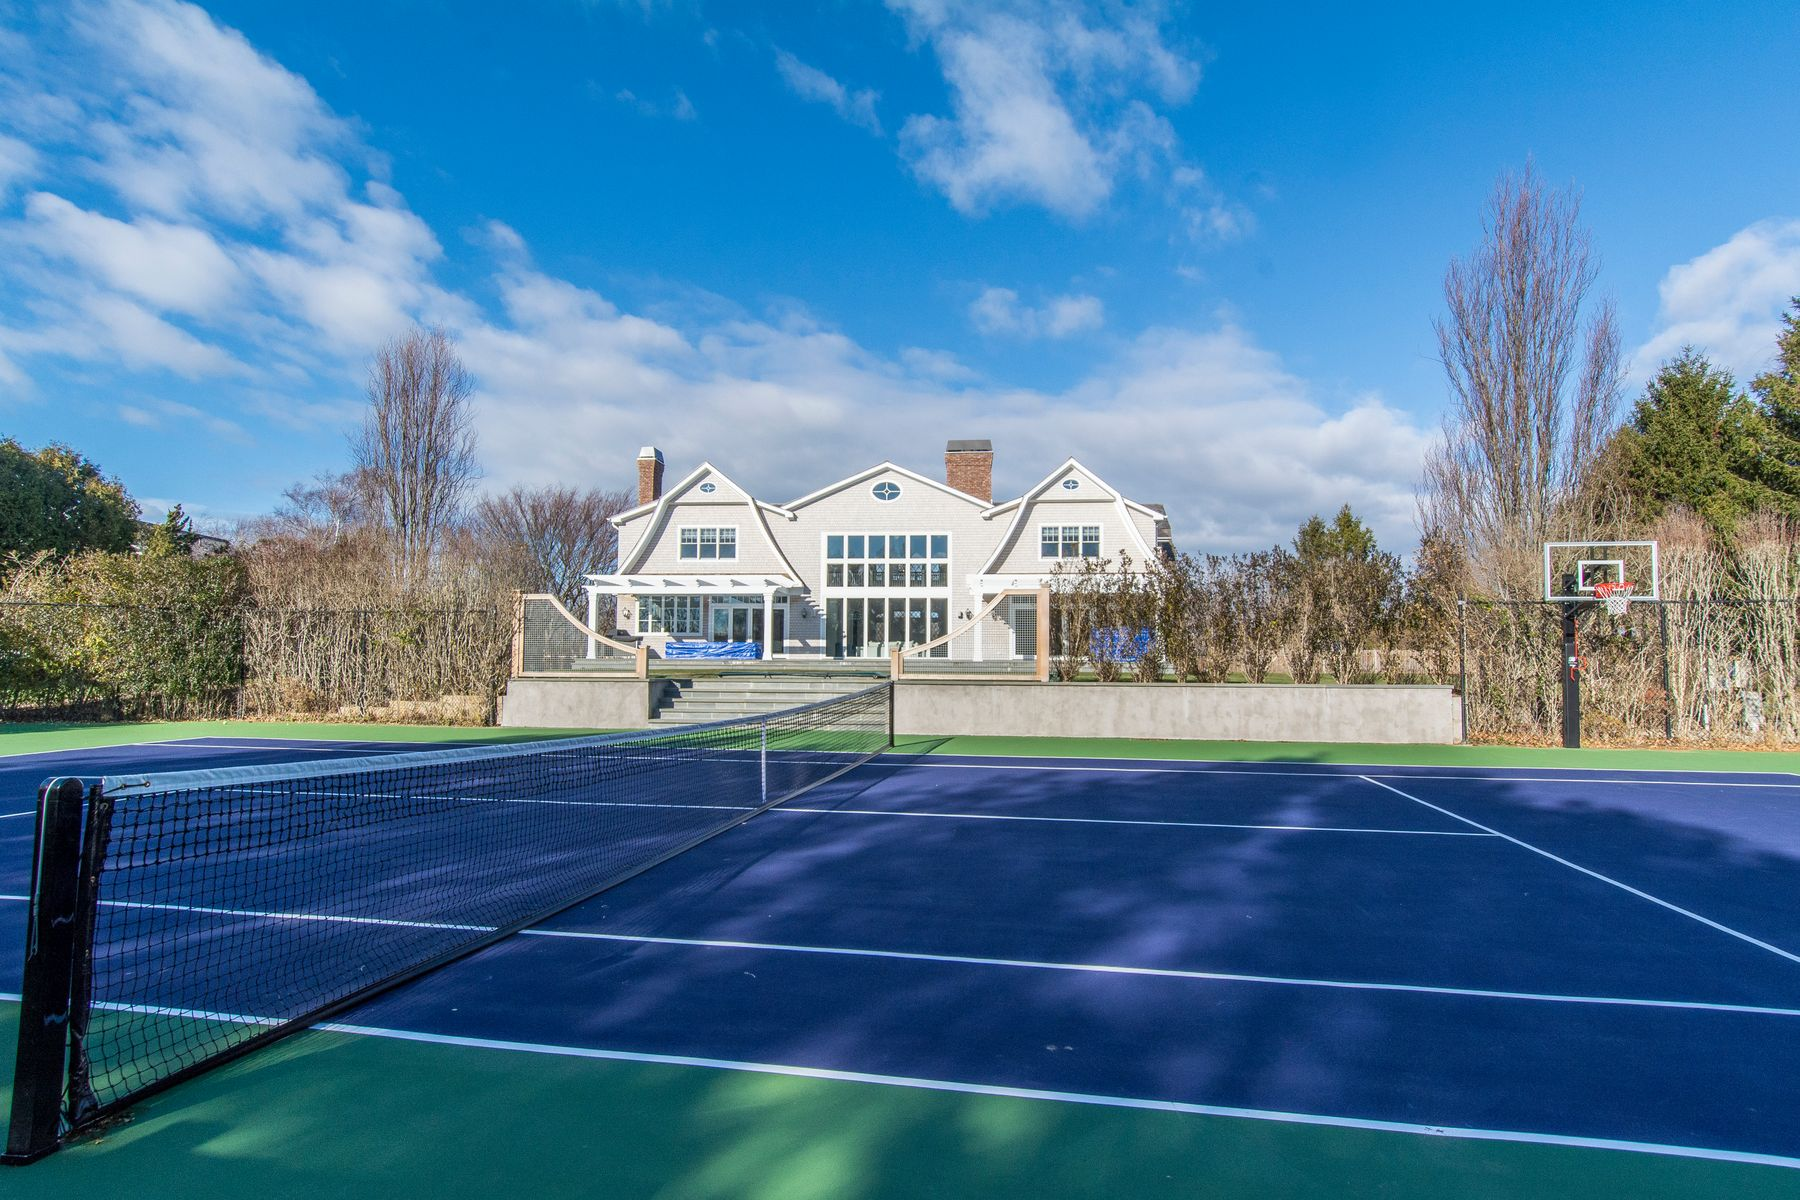 Property for Sale at SOUTHAMPTON VILLAGE ESTATE WITH TENNIS 82 Pheasant Close North Southampton, New York 11968 United States